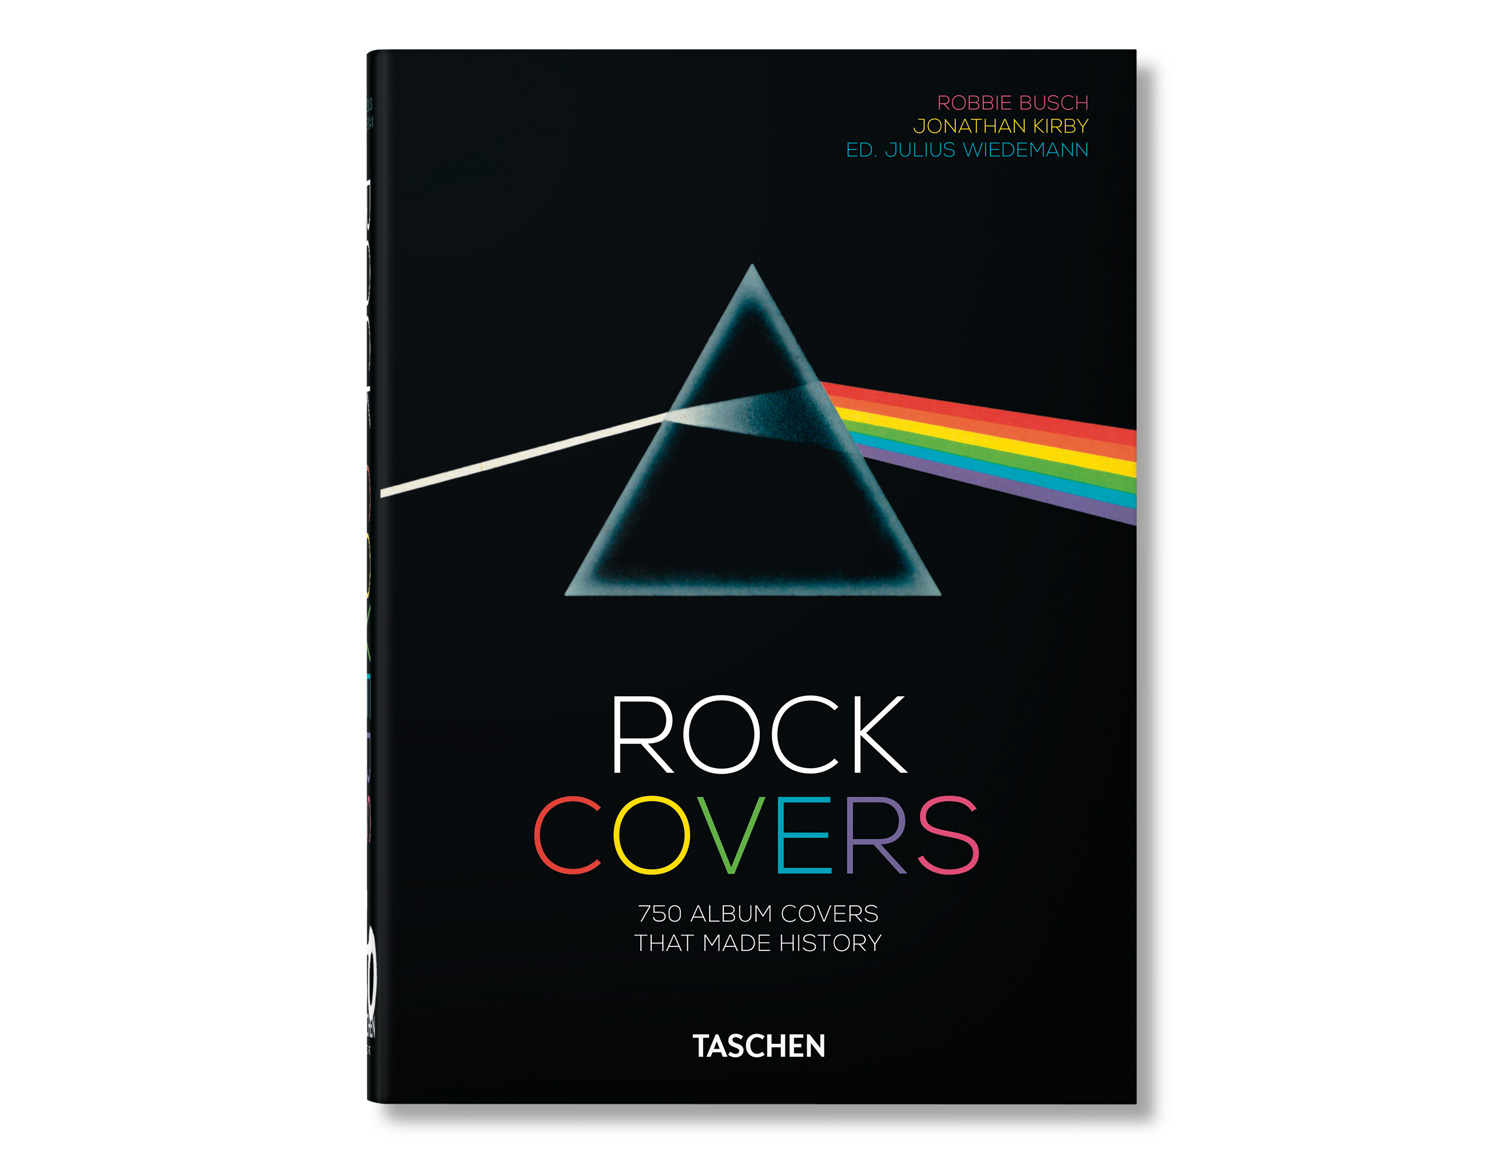 Rock Covers: 750 Album Covers That Made History at werd.com